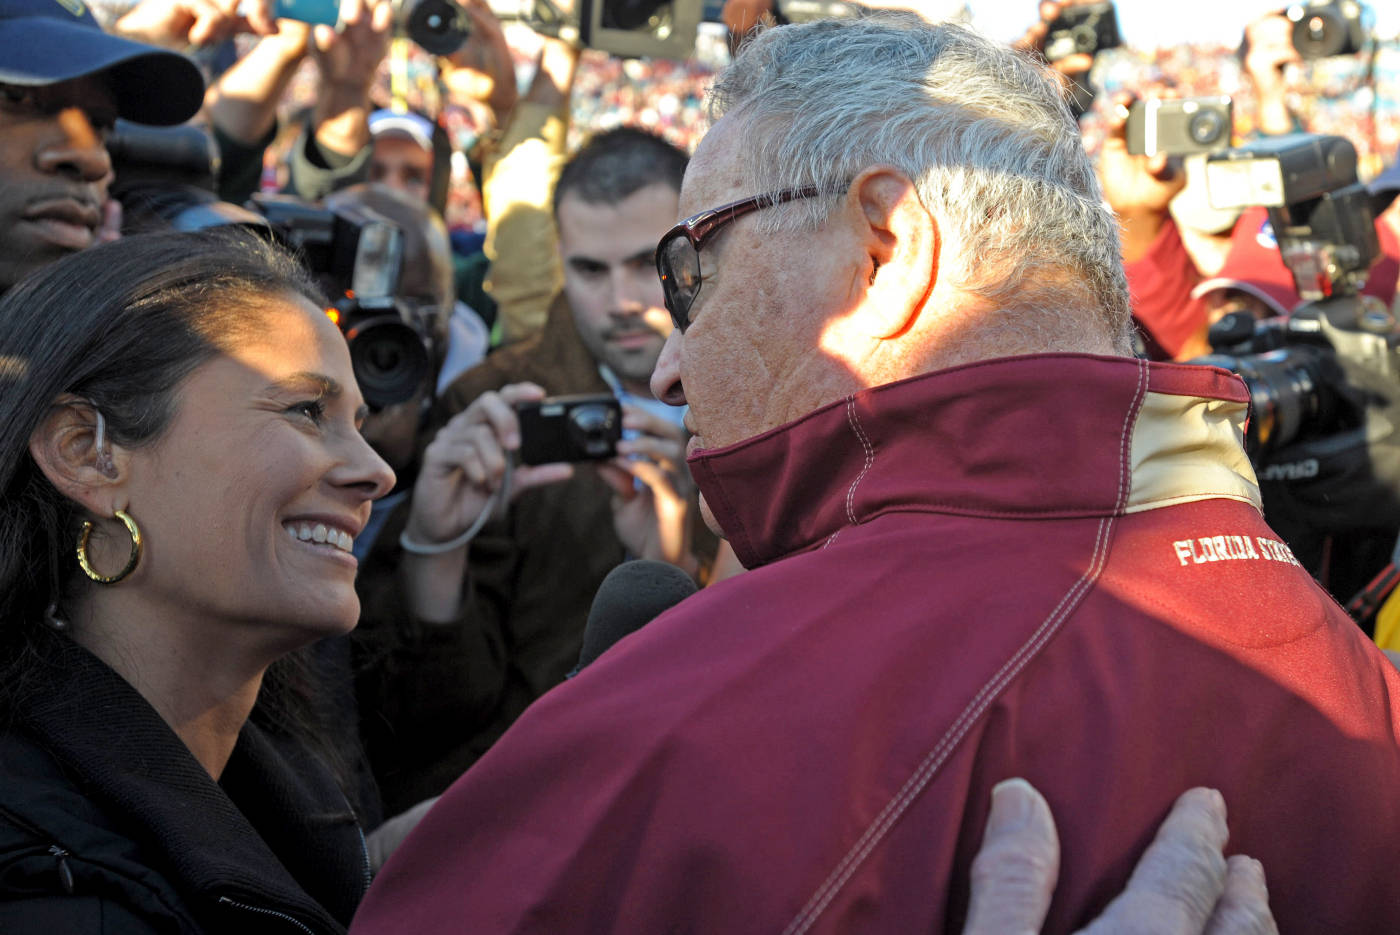 Bobby Bowden interviewed after the game by CBS's Tracy Wolfson